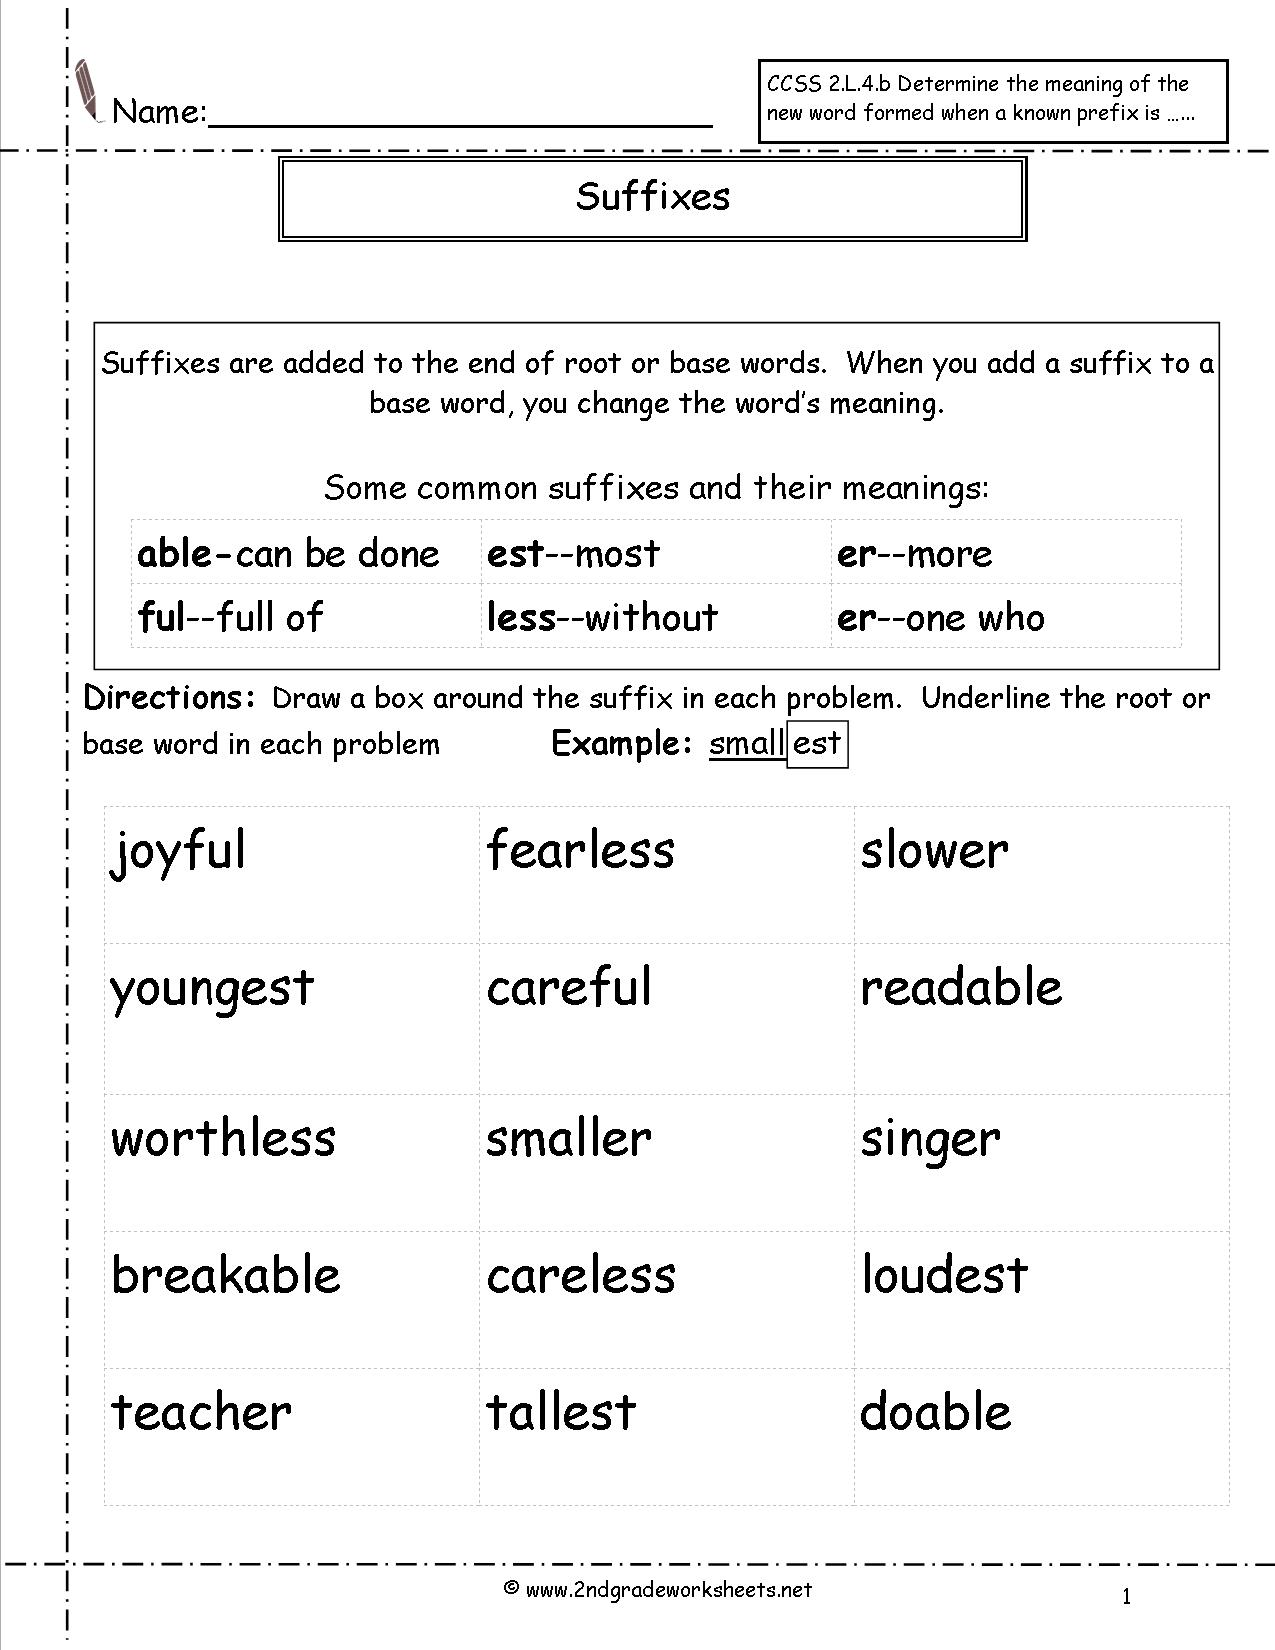 Suffixes Worksheet For 4th Grade